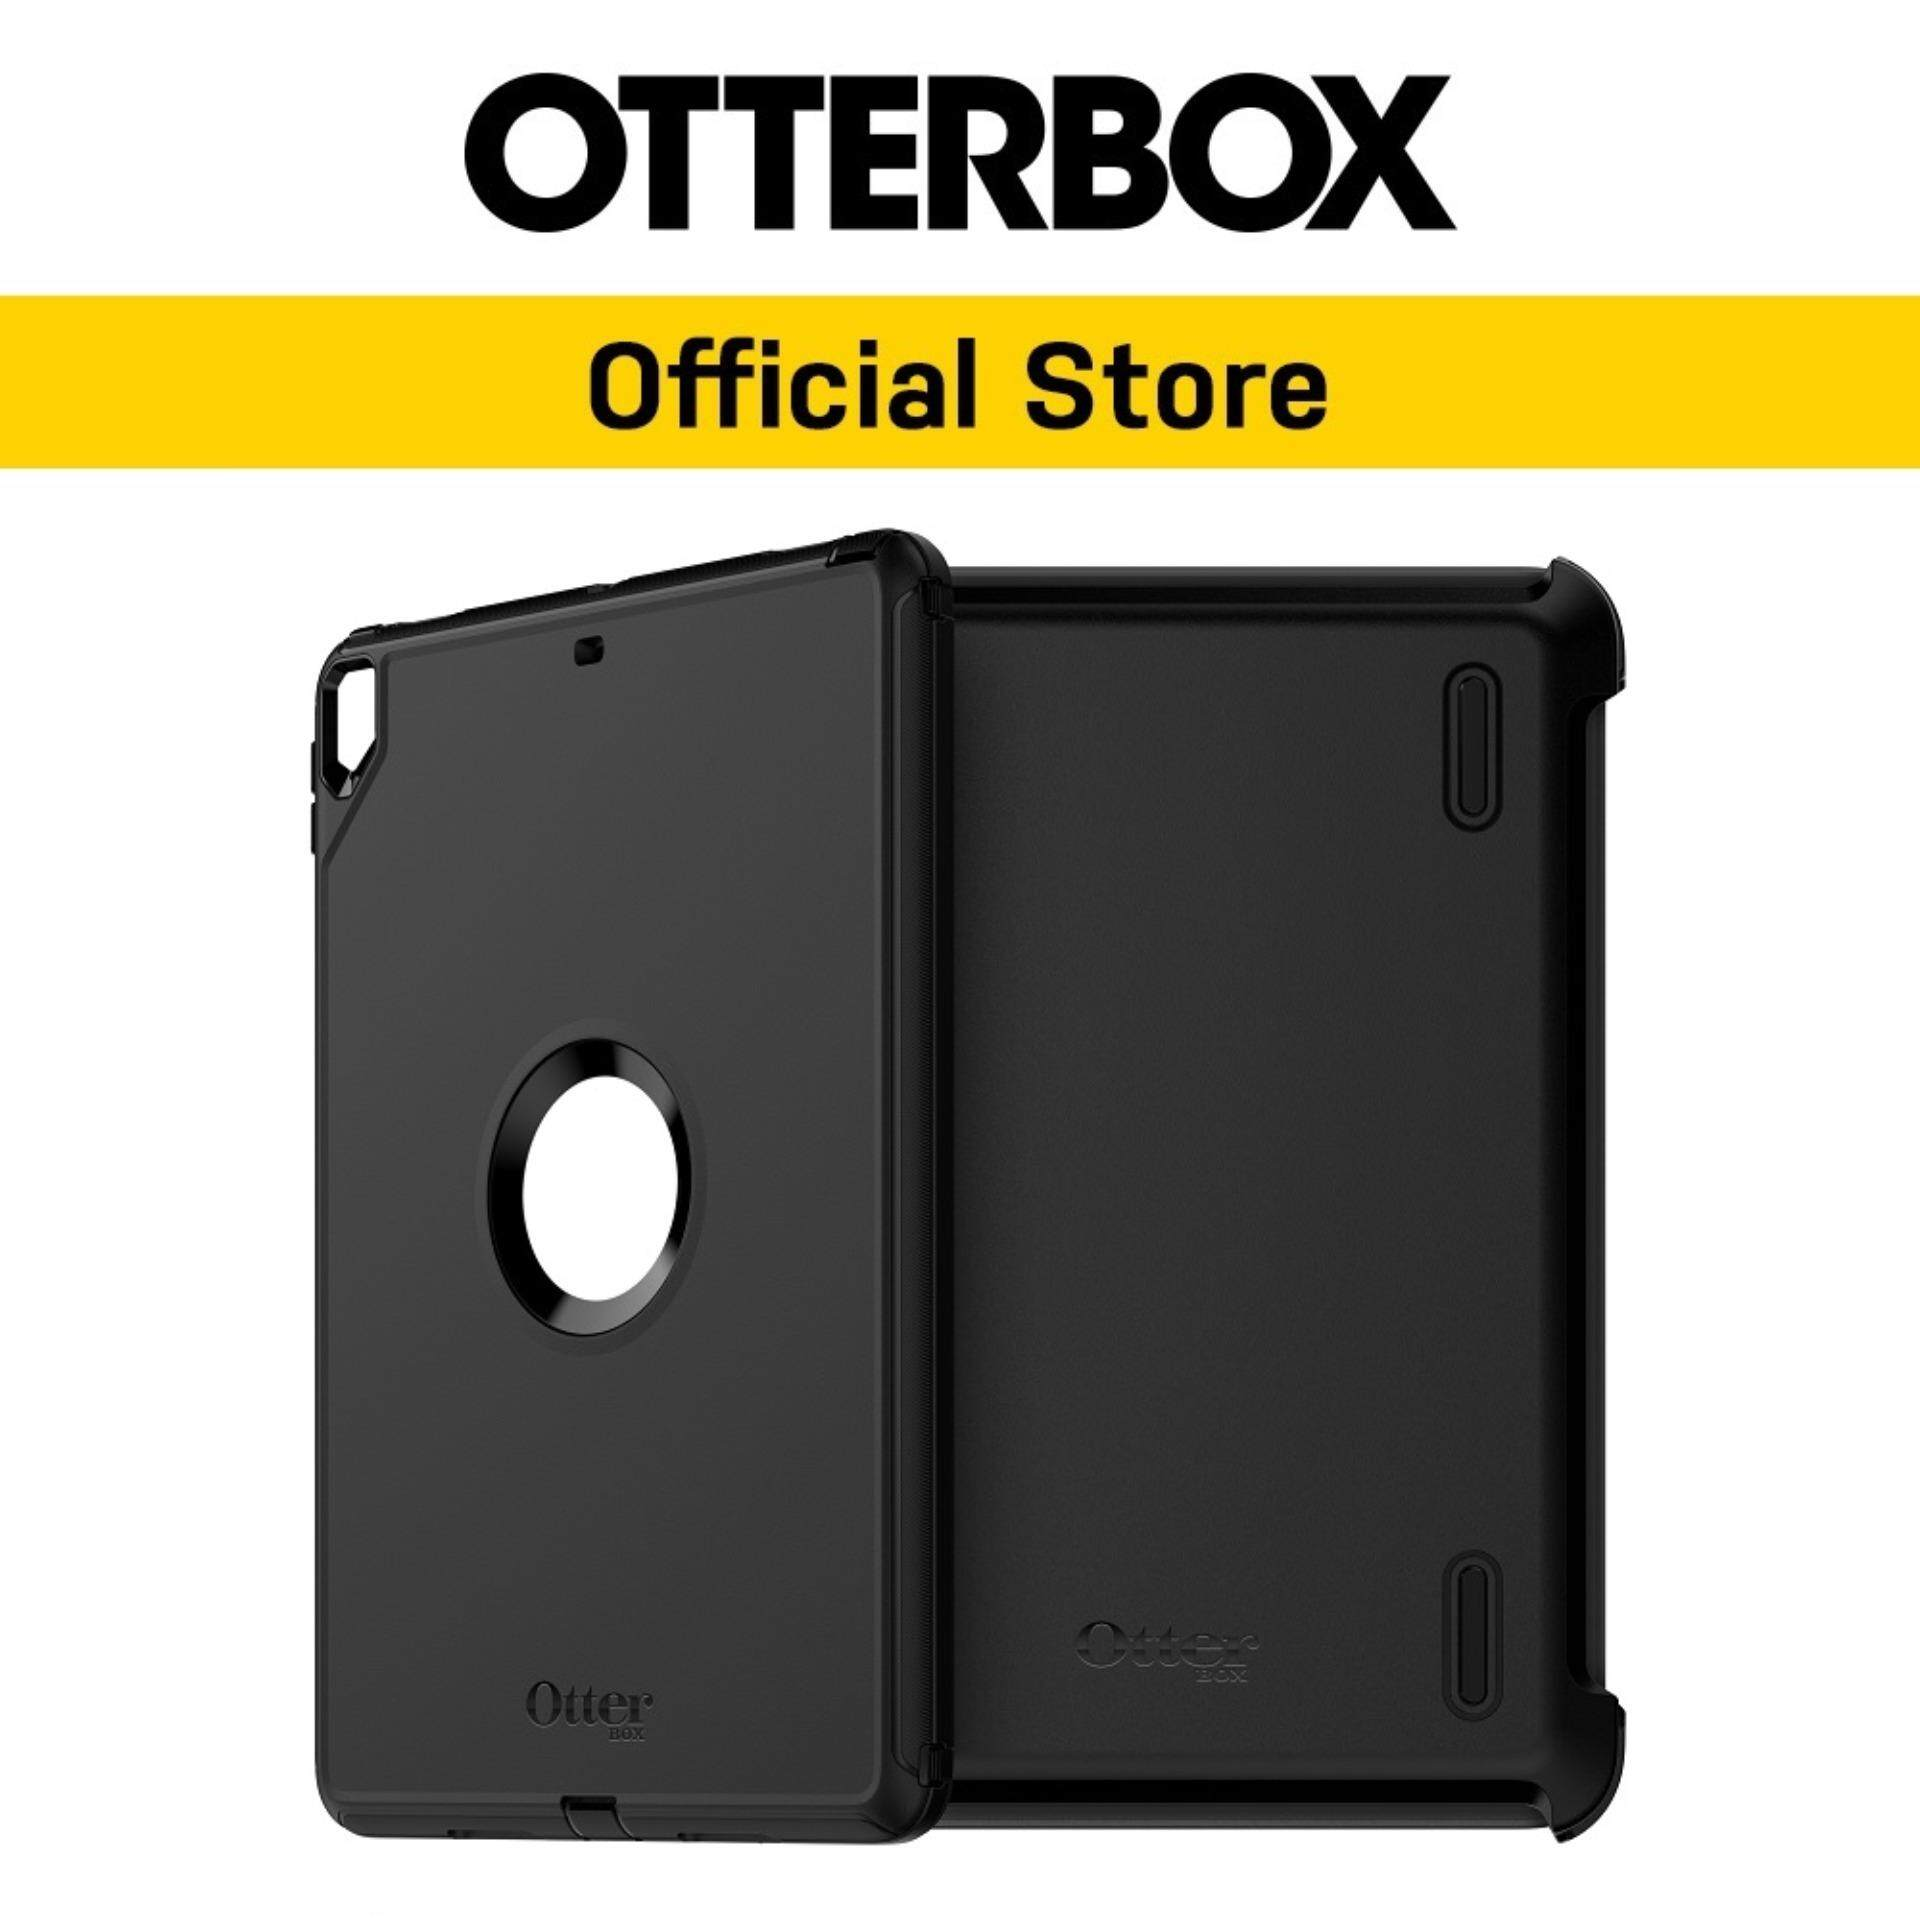 new product cef79 90026 OtterBox Malaysia - Buy at best price in Malaysia | Lazada.com.my